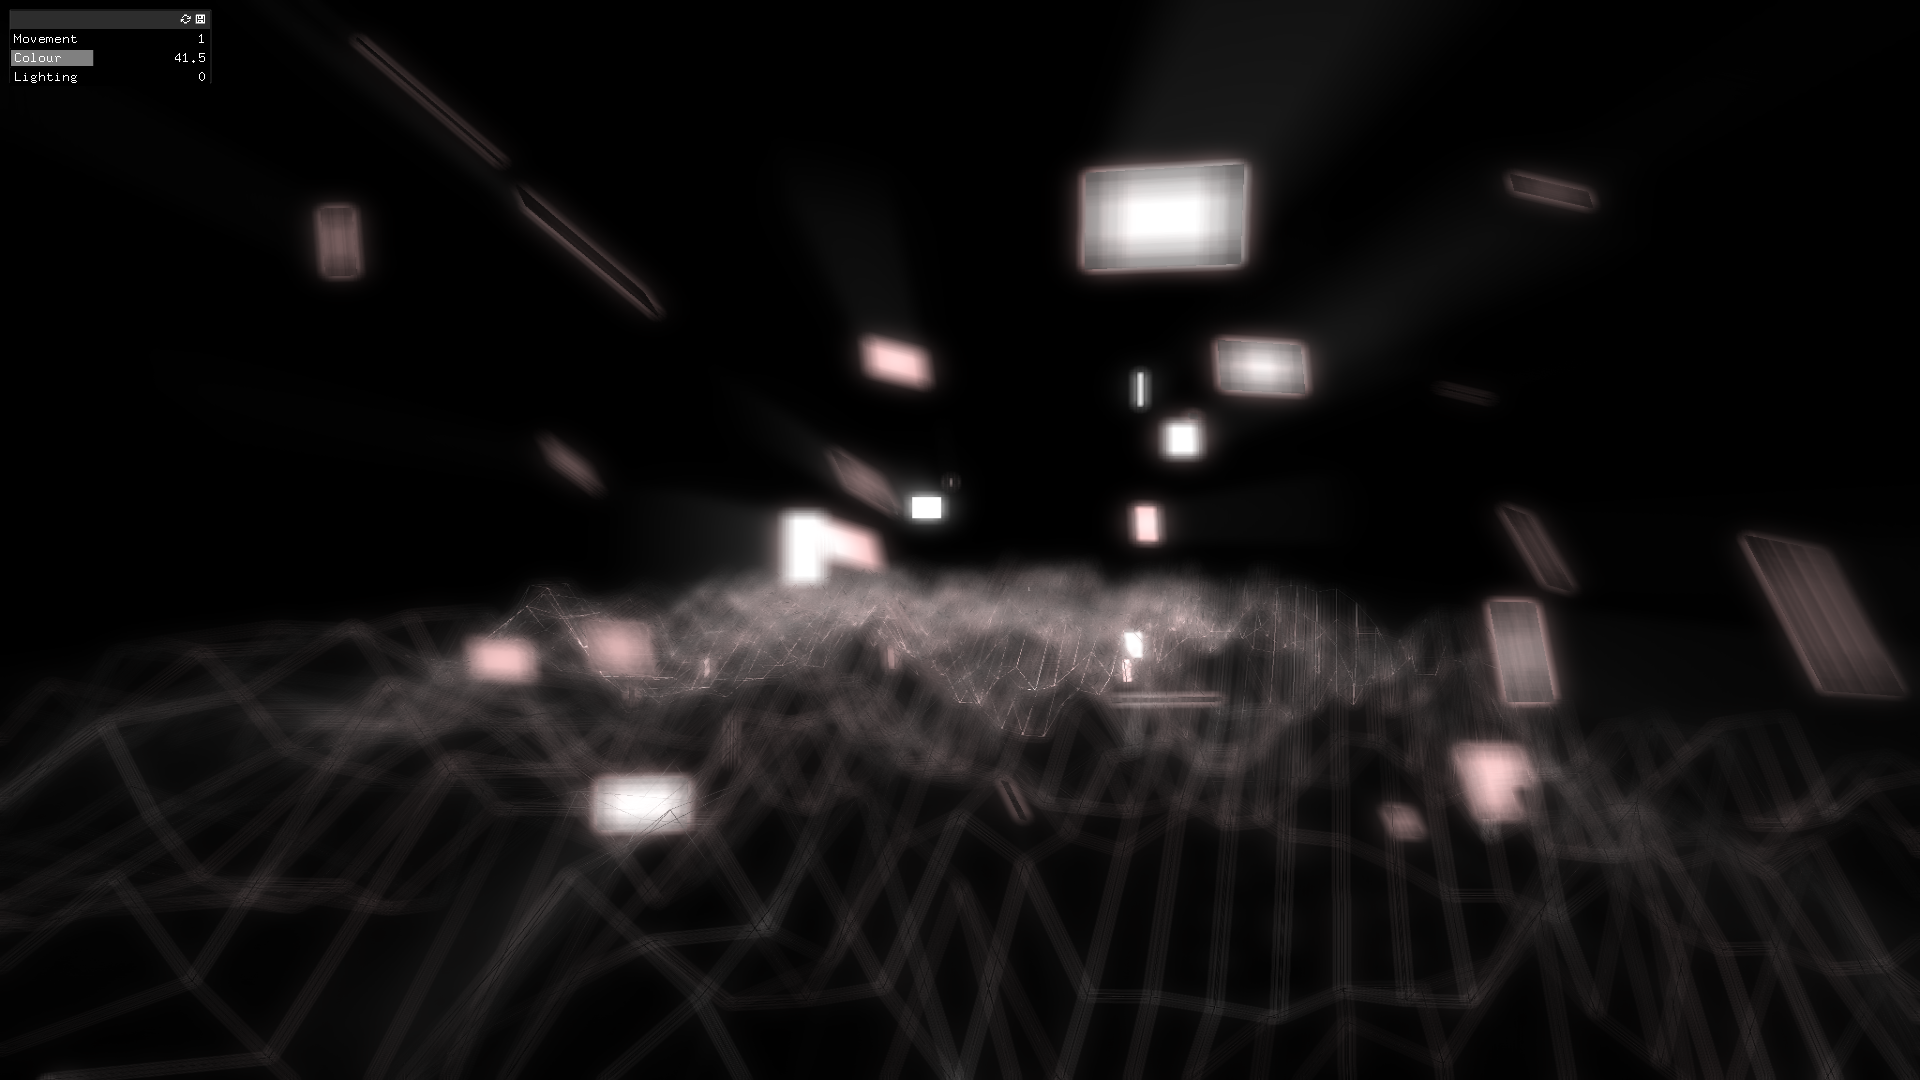 The OpenFrameworks Virtual Environment